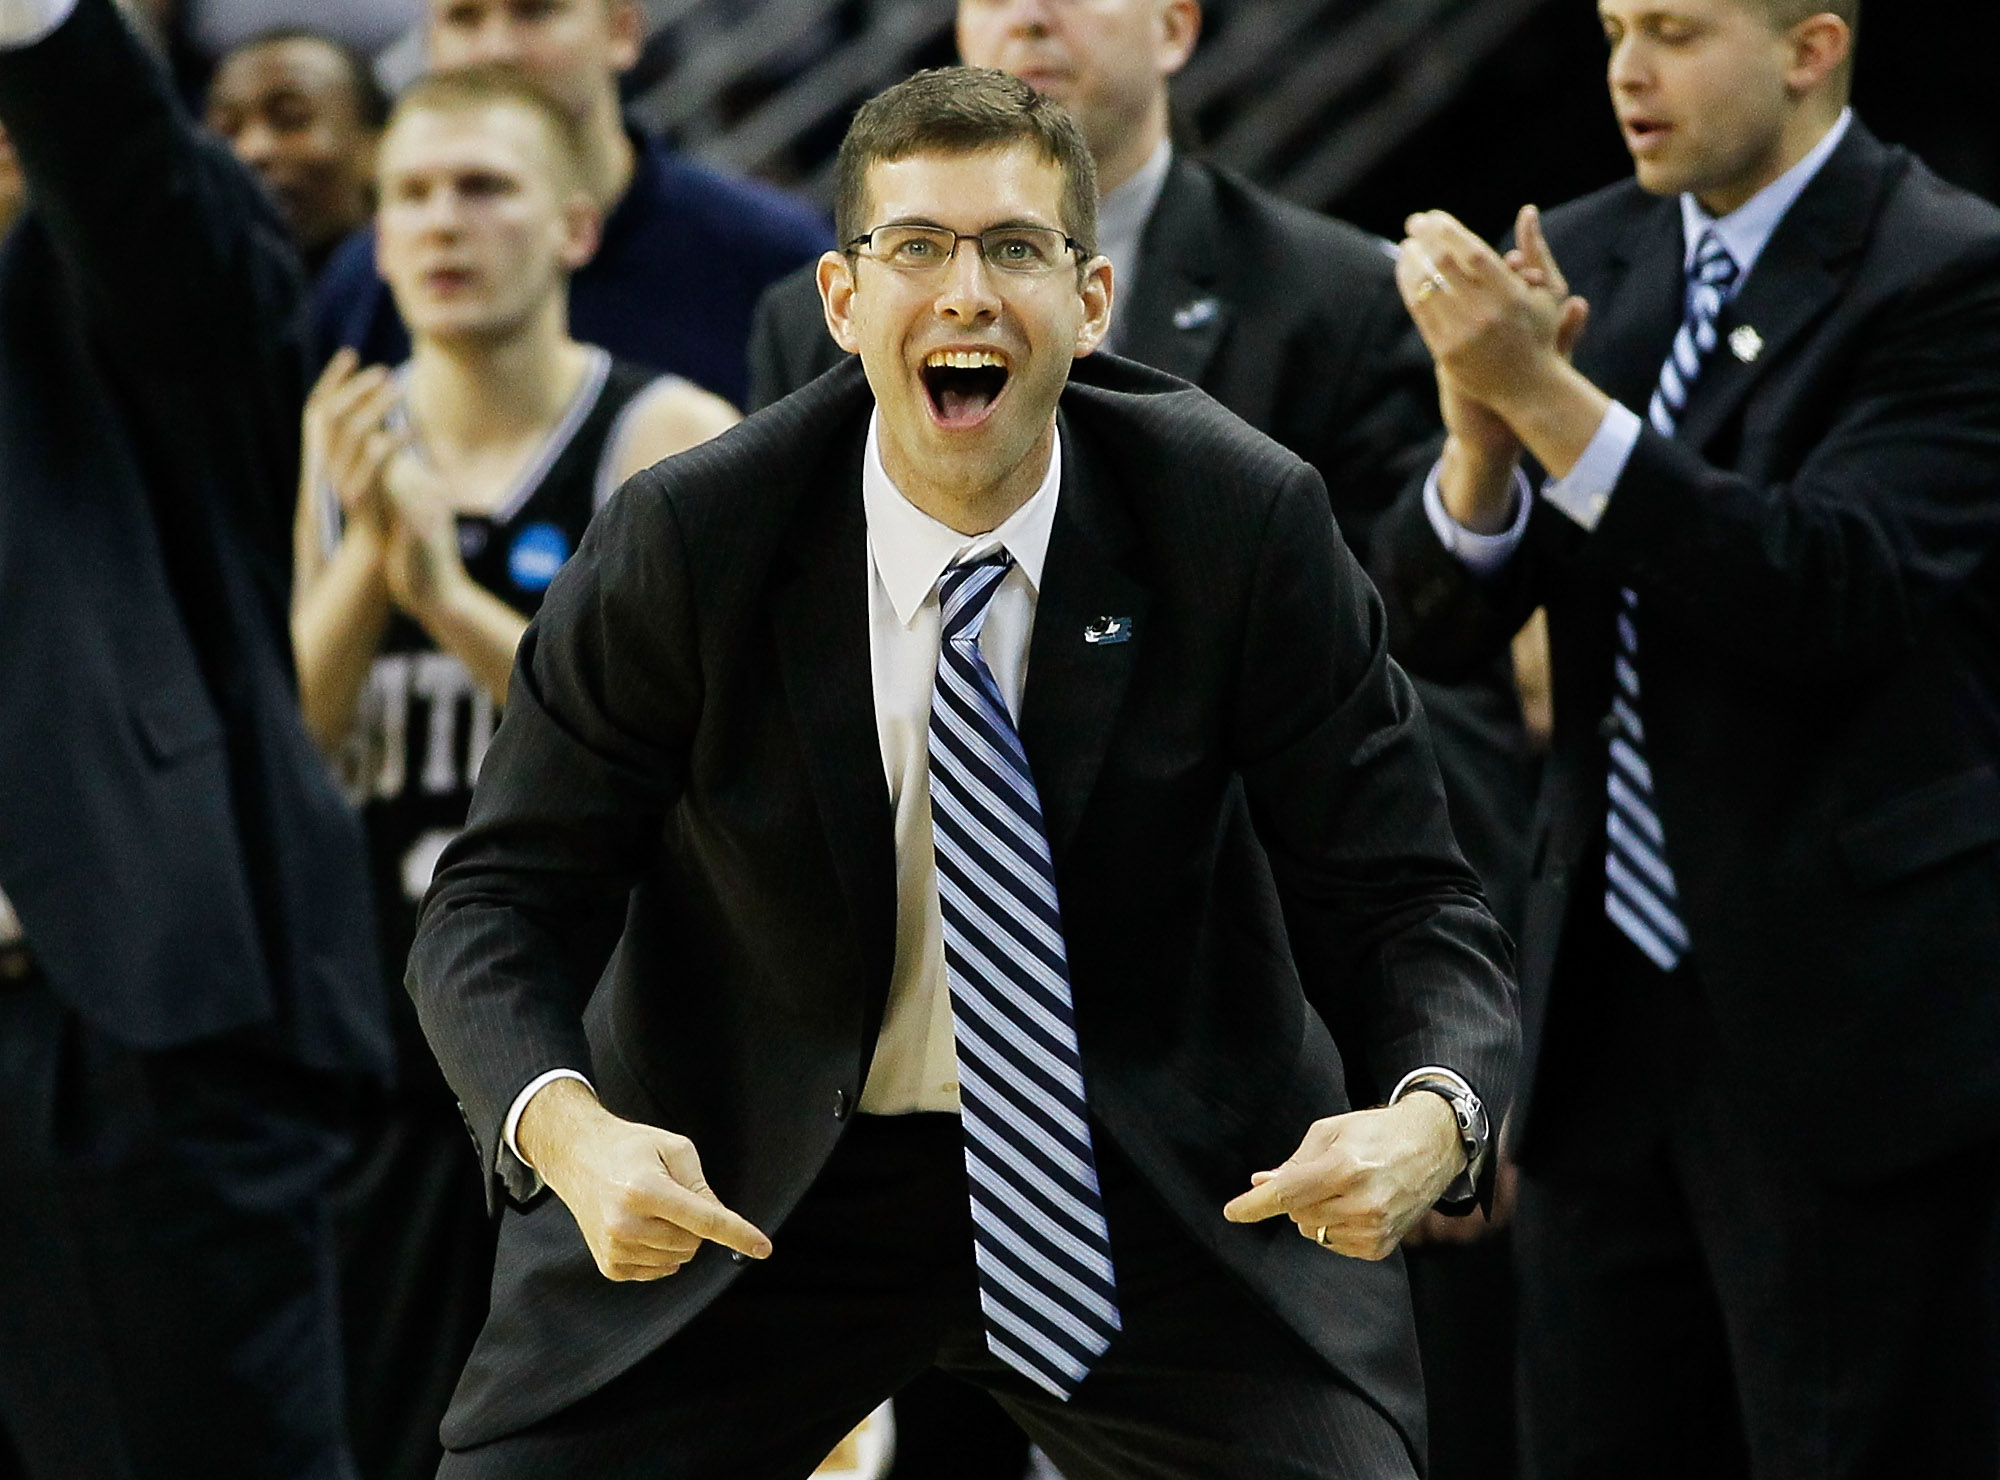 NEW ORLEANS, LA - MARCH 26:  Head coach Brad Stevens of the Butler Bulldogs reacts during overtime against the Florida Gators in the Southeast regional final of the 2011 NCAA men's basketball tournament at New Orleans Arena on March 26, 2011 in New Orlean